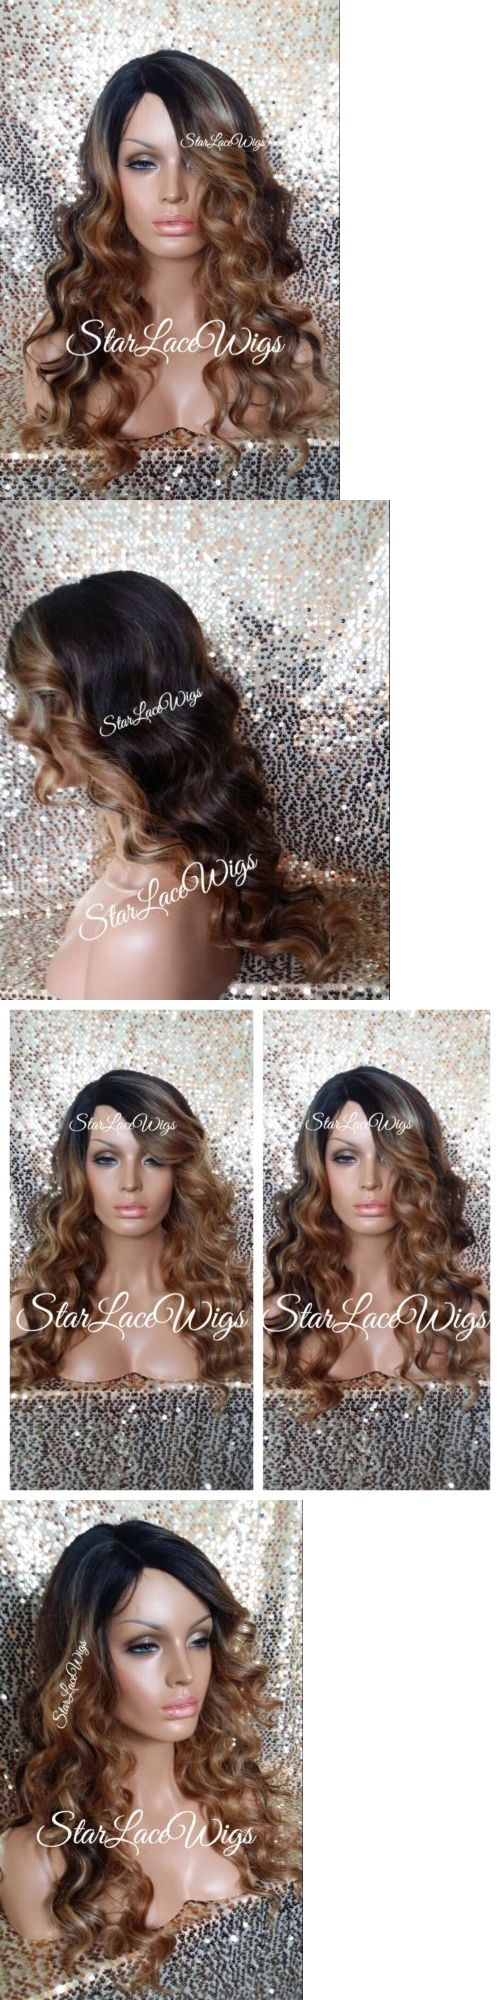 Wigs and Hairpieces: Curly Body Wave Lace Front Wig Brown Auburn Blonde Ombre Mix Highlight Heat Safe -> BUY IT NOW ONLY: $64.99 on eBay!